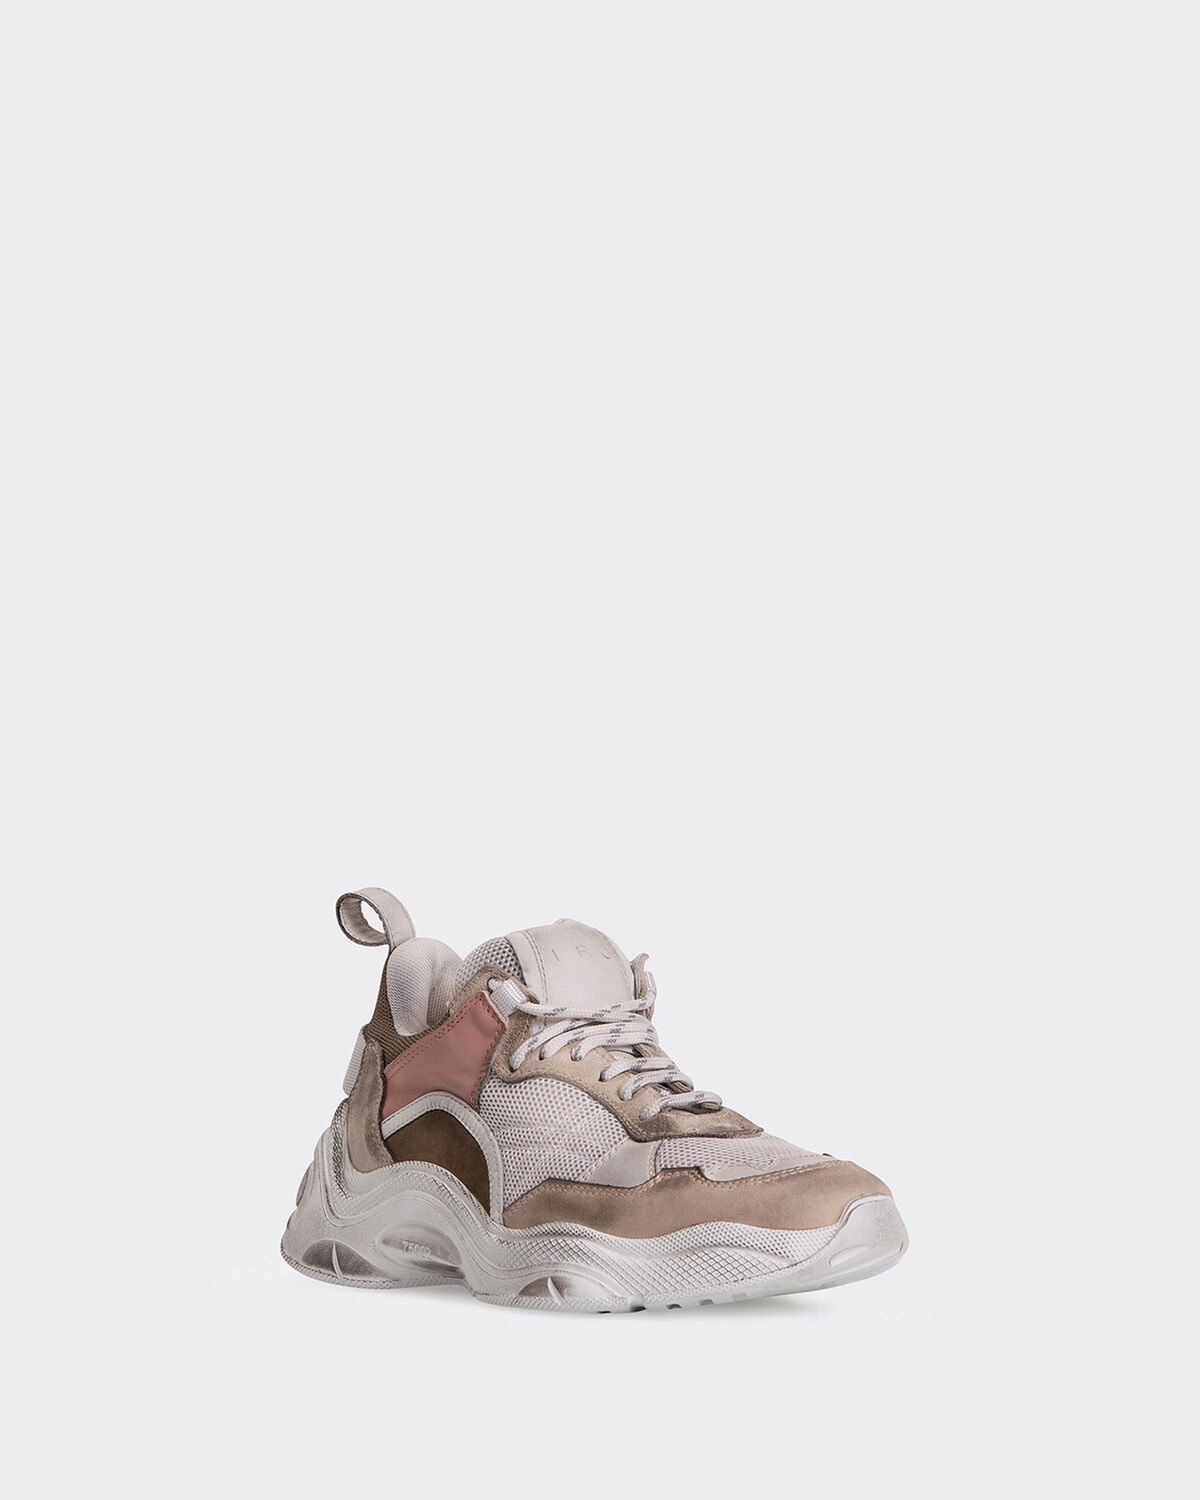 IRO - CURVE RUNNER SNEAKERS LIGHT KHAKI